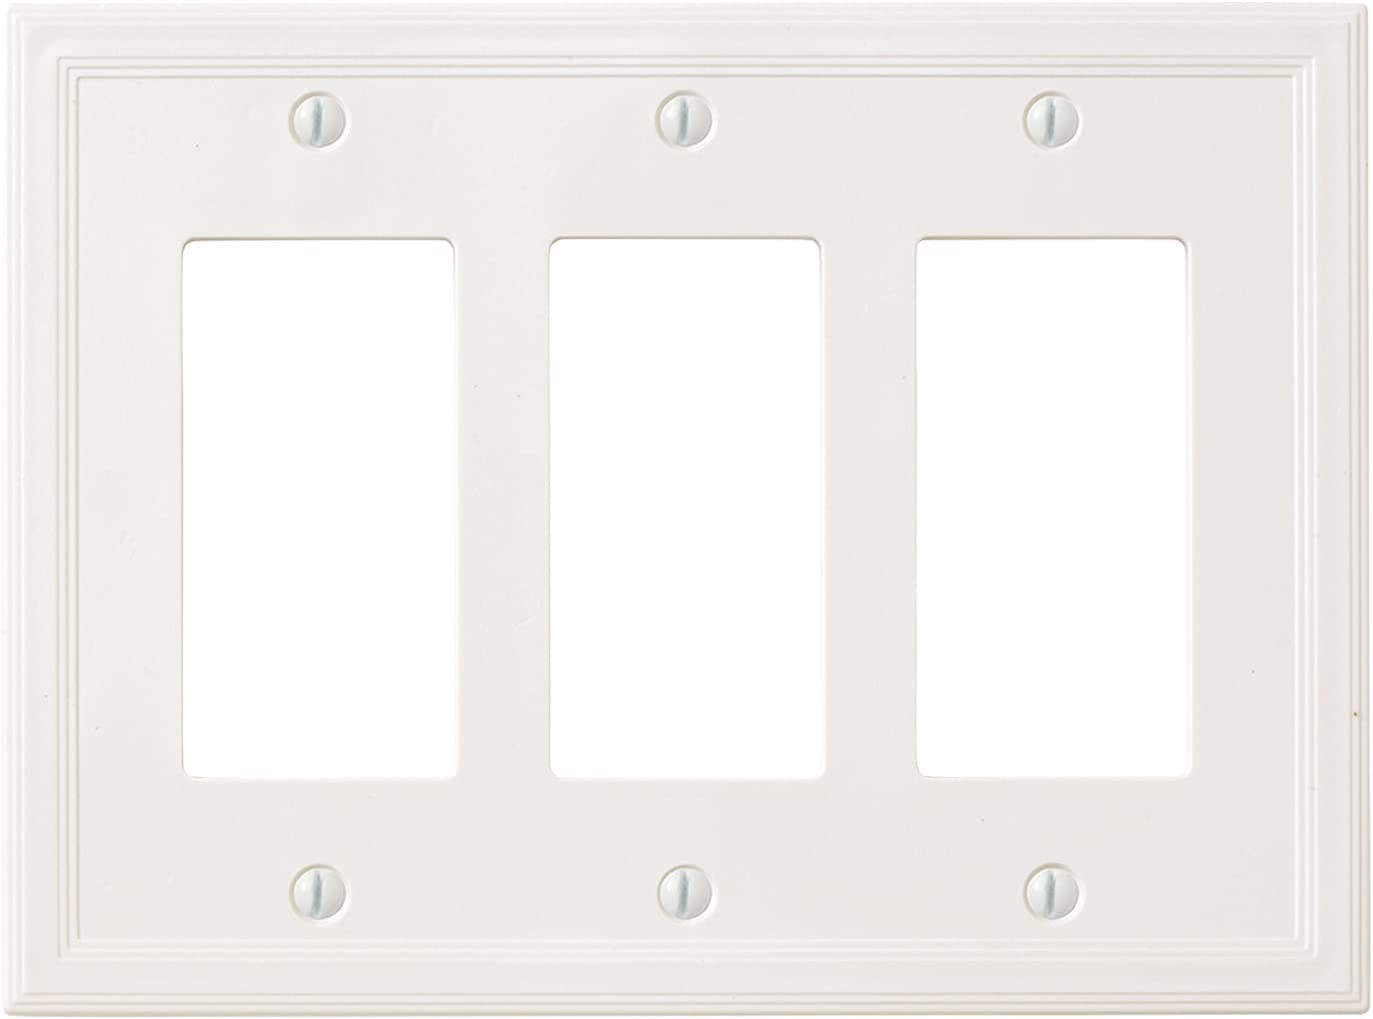 Insulated Triple Rocker - White Light Switch Cover Decorative Outlet Cover Wall Plate